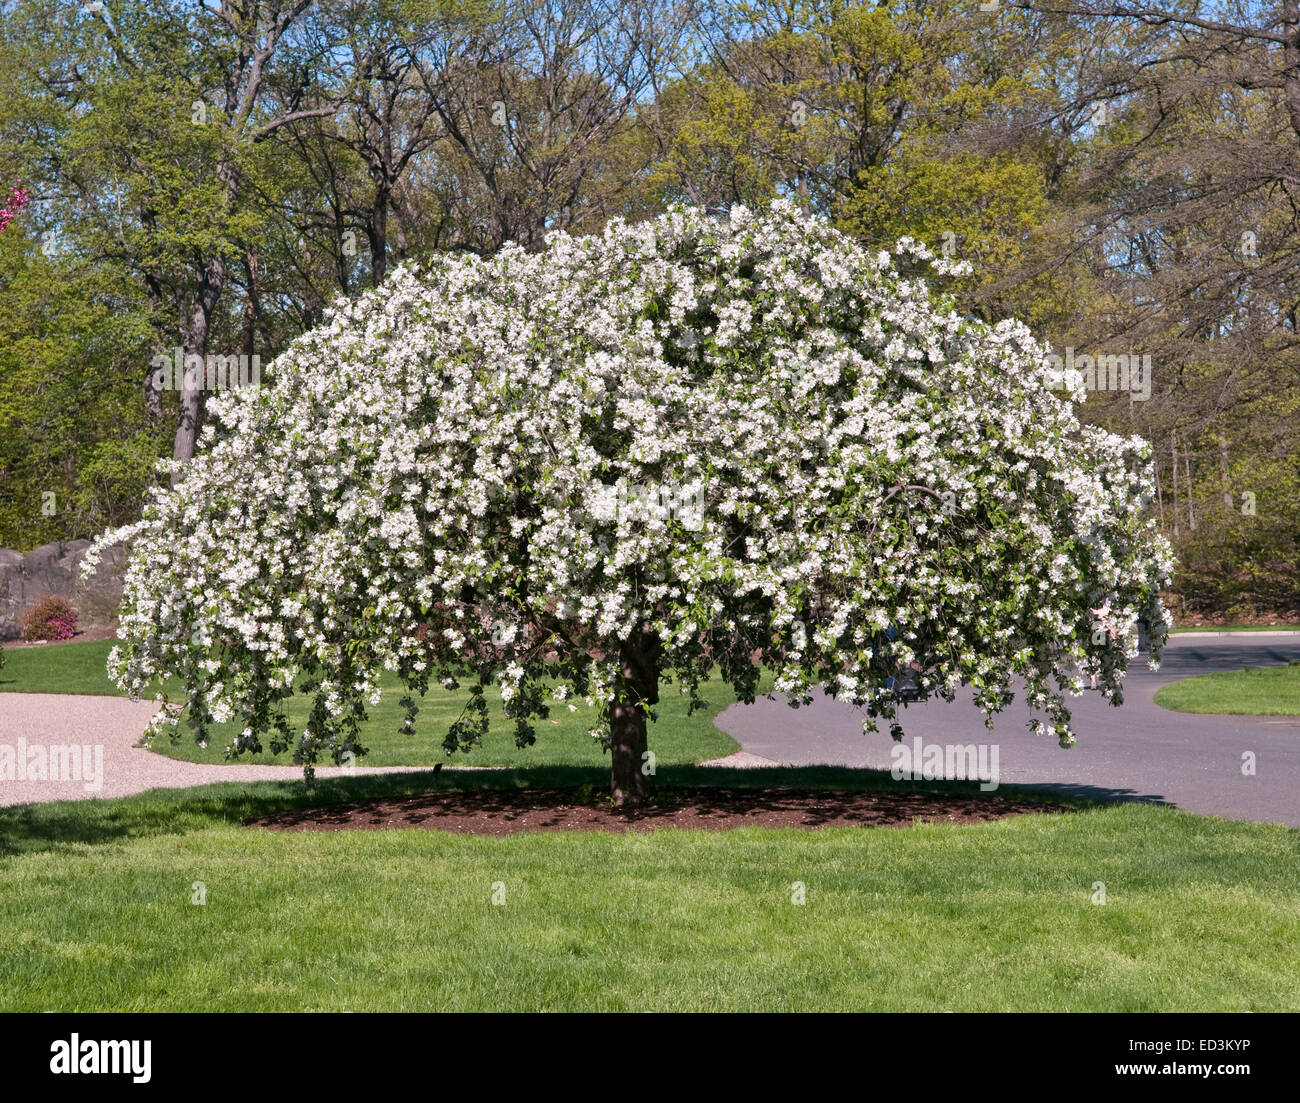 Crab Apple Tree Stock Photos Crab Apple Tree Stock Images Alamy